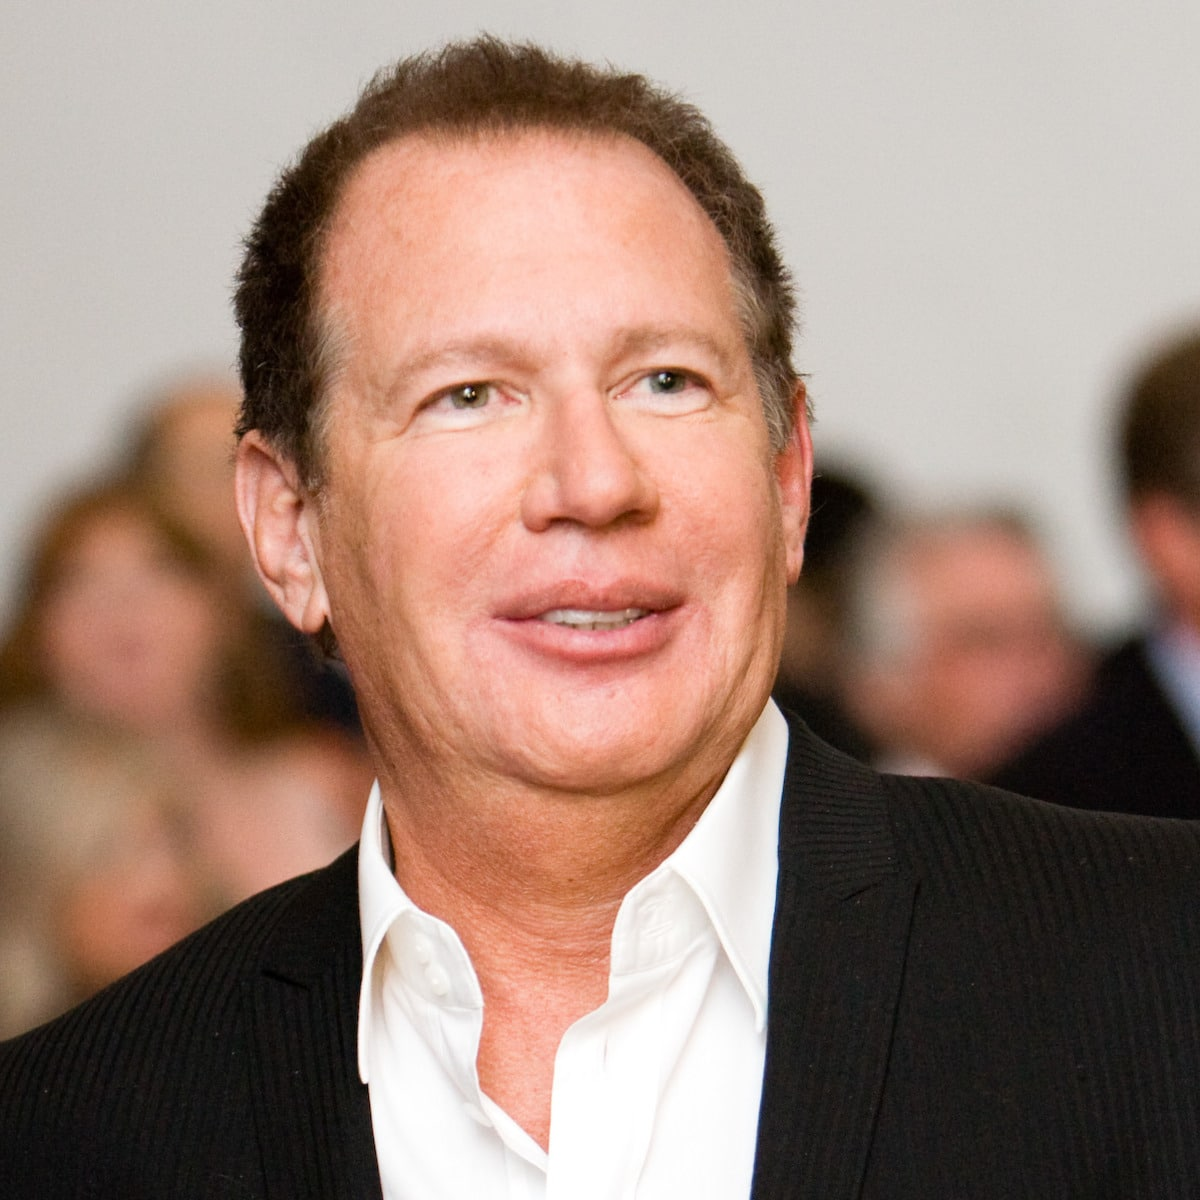 Garry Shandling American Actor, Comedian, Director, Producer, Writer